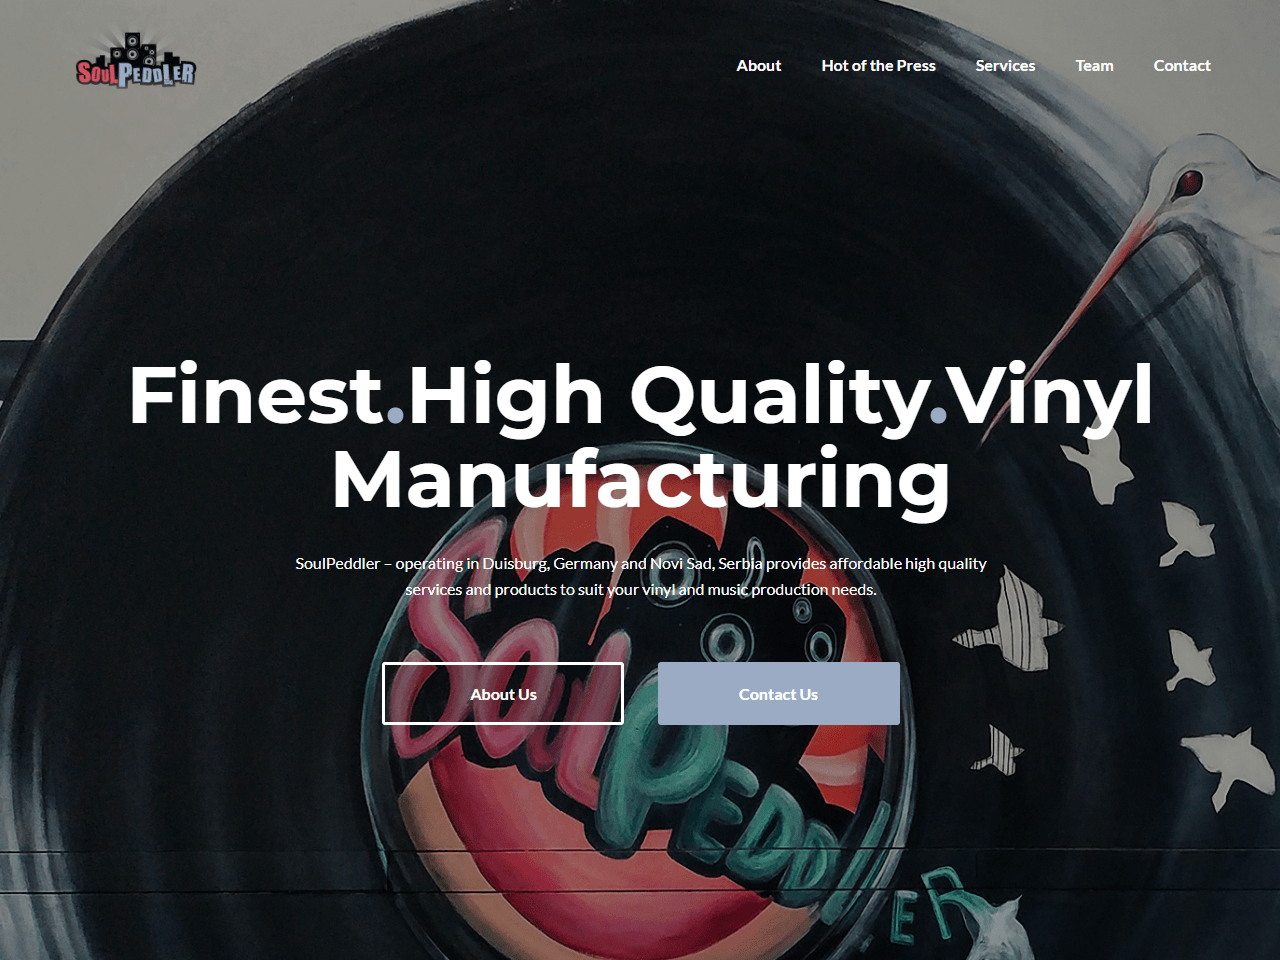 soulpeddler german and serbian vinyl manufacturing